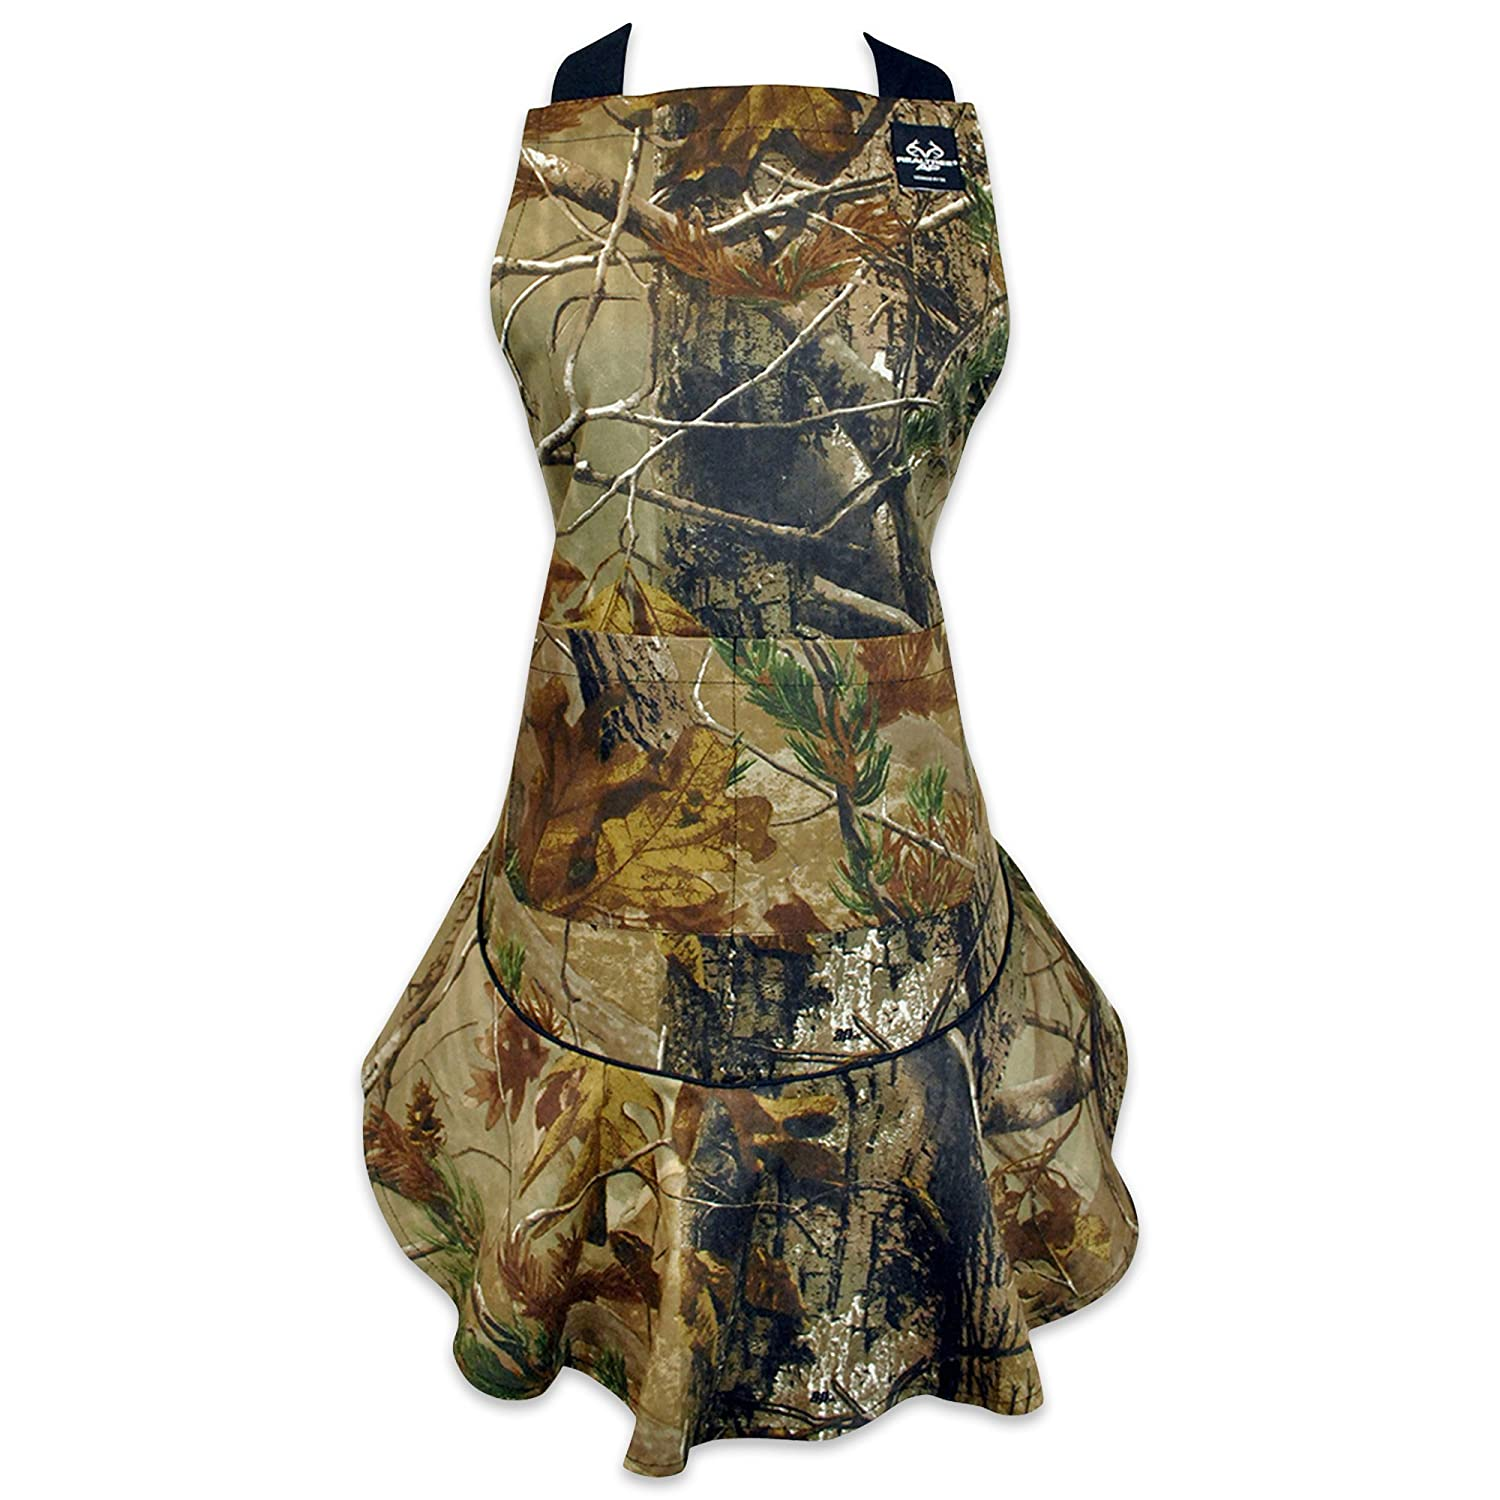 DII 100% Cotton, Machine Washable, RealTree Chef's Camo Kitchen or BBQ Apron, Perfect For Hosting, Grilling, & Father's Day Gifts - Unisex CRT32377